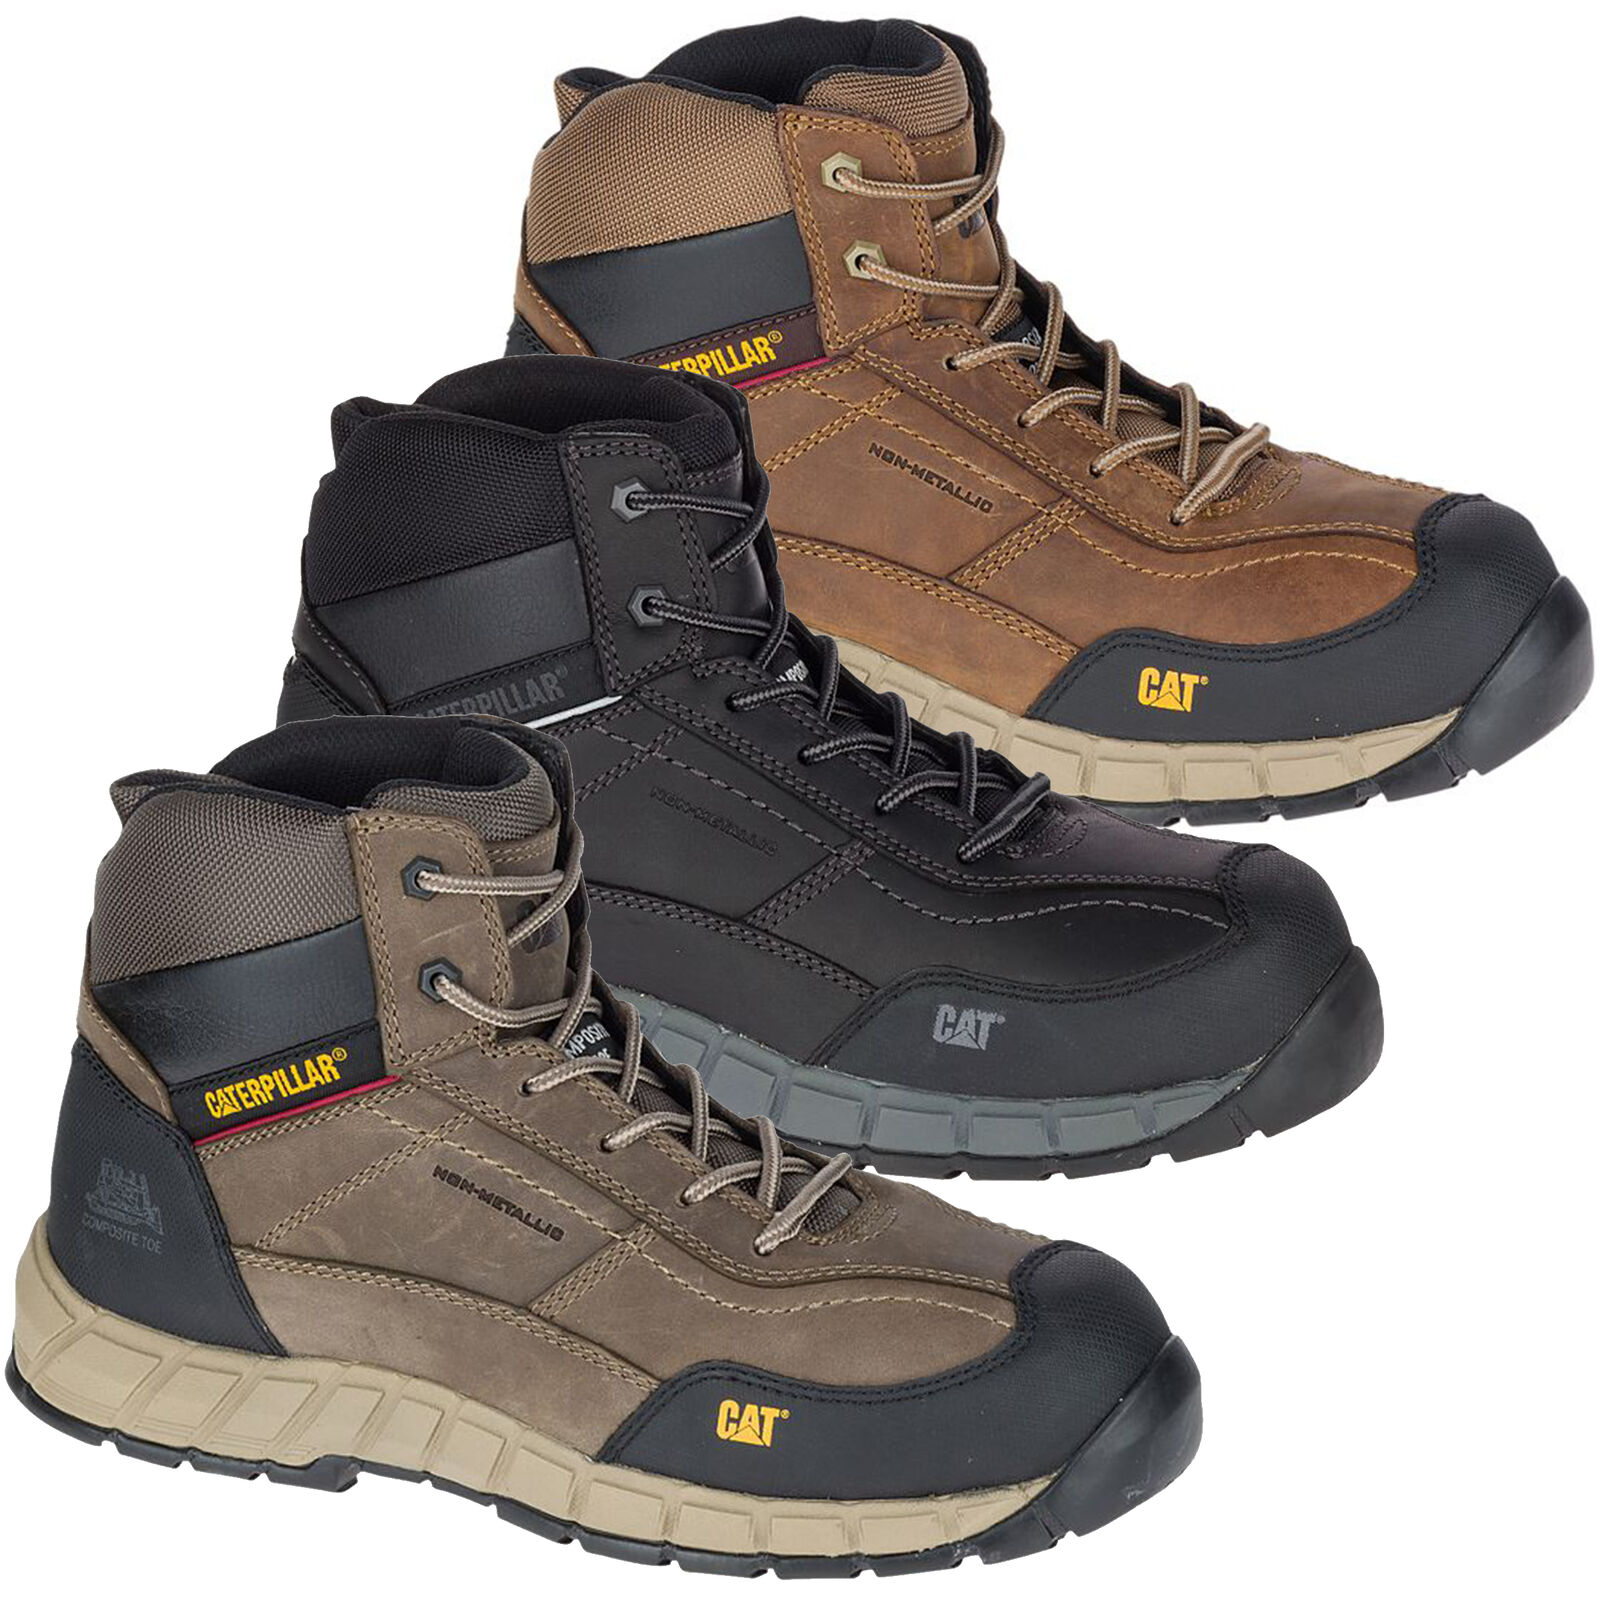 Mens Caterpillar Streamline Composite Toe/Midsole Safety Work Boot Sizes 6 to 13